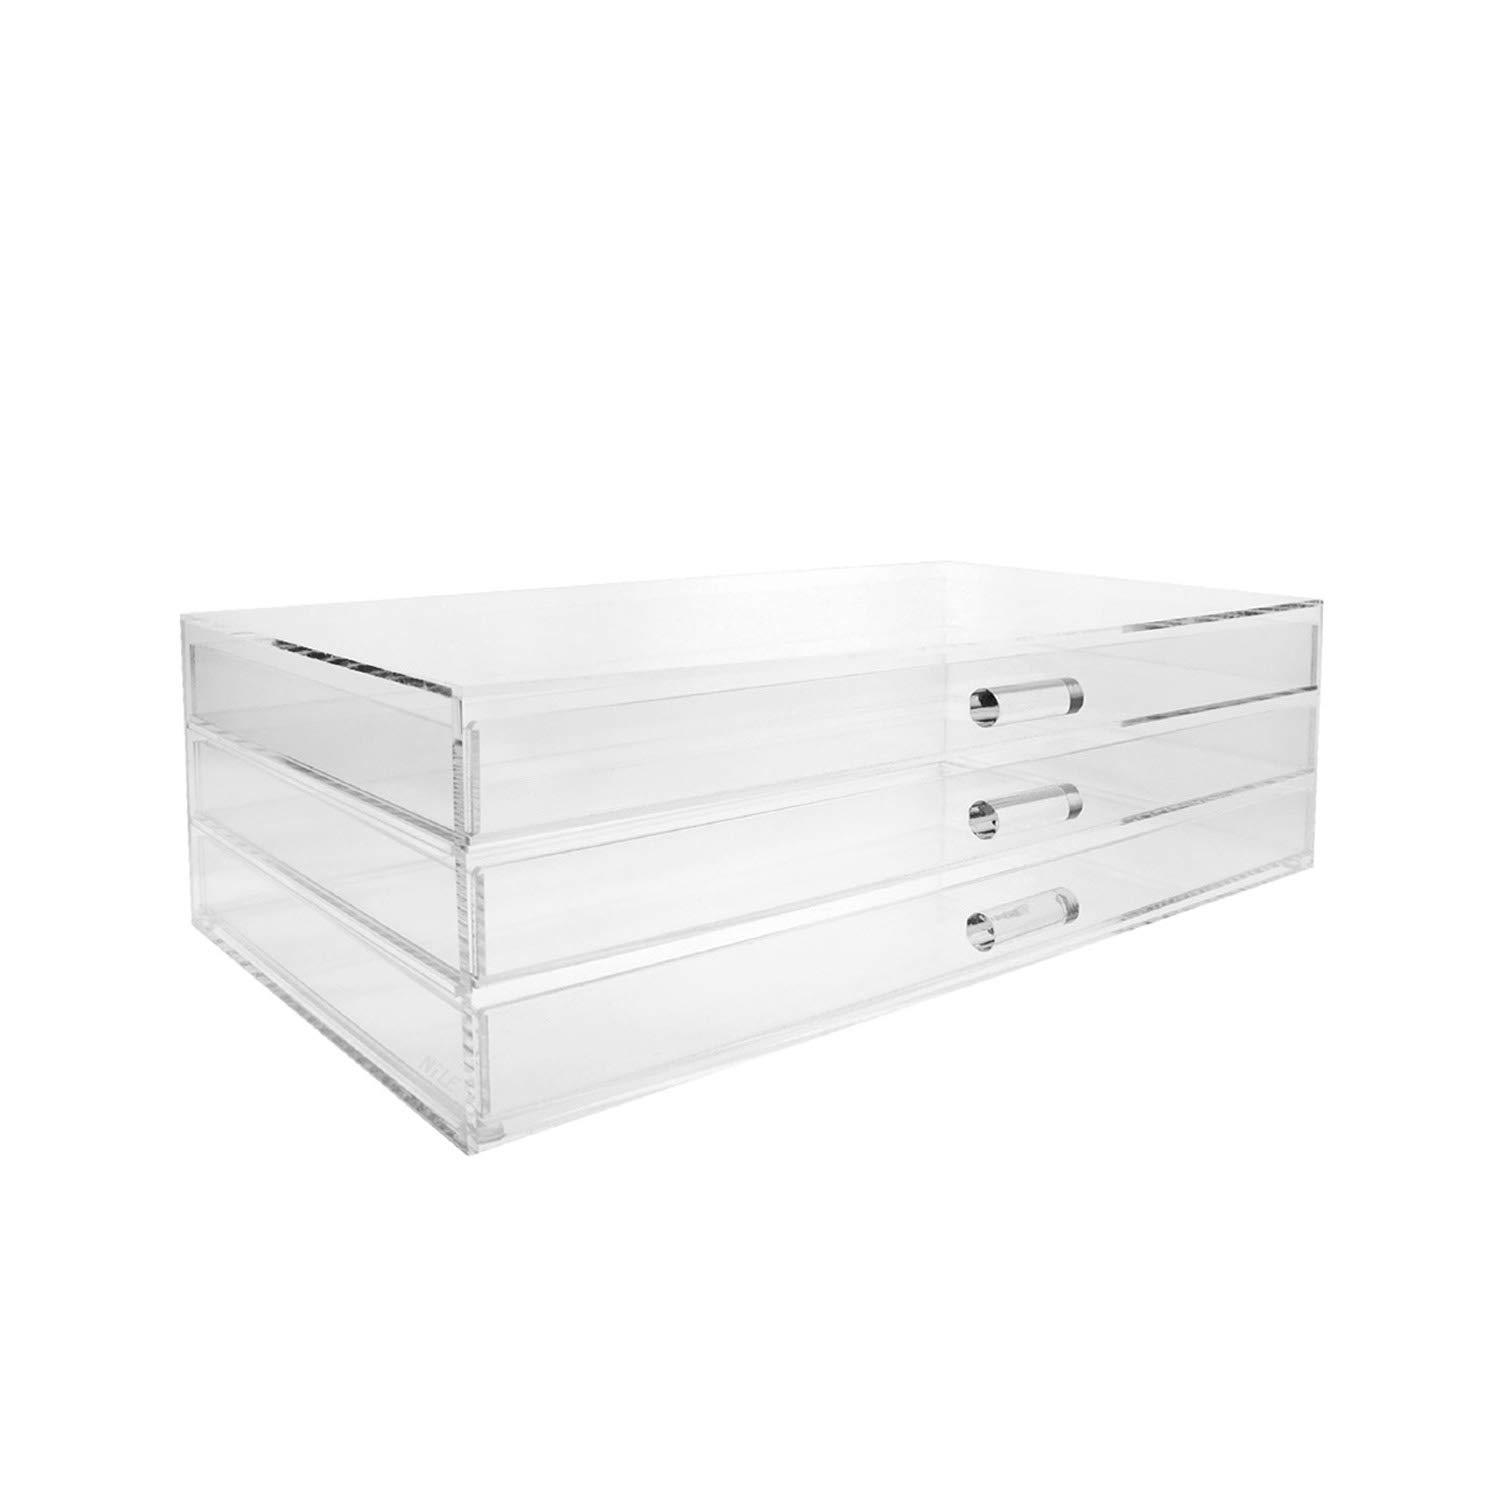 Ikee Design Premium Acrylic 3 Drawer Makeup Organizer Cosmetic Storage Jewelry Display Case Buy Online In Bulgaria Ikee Design Products In Bulgaria See Prices Reviews And Free Delivery Over 120 Lv Desertcart